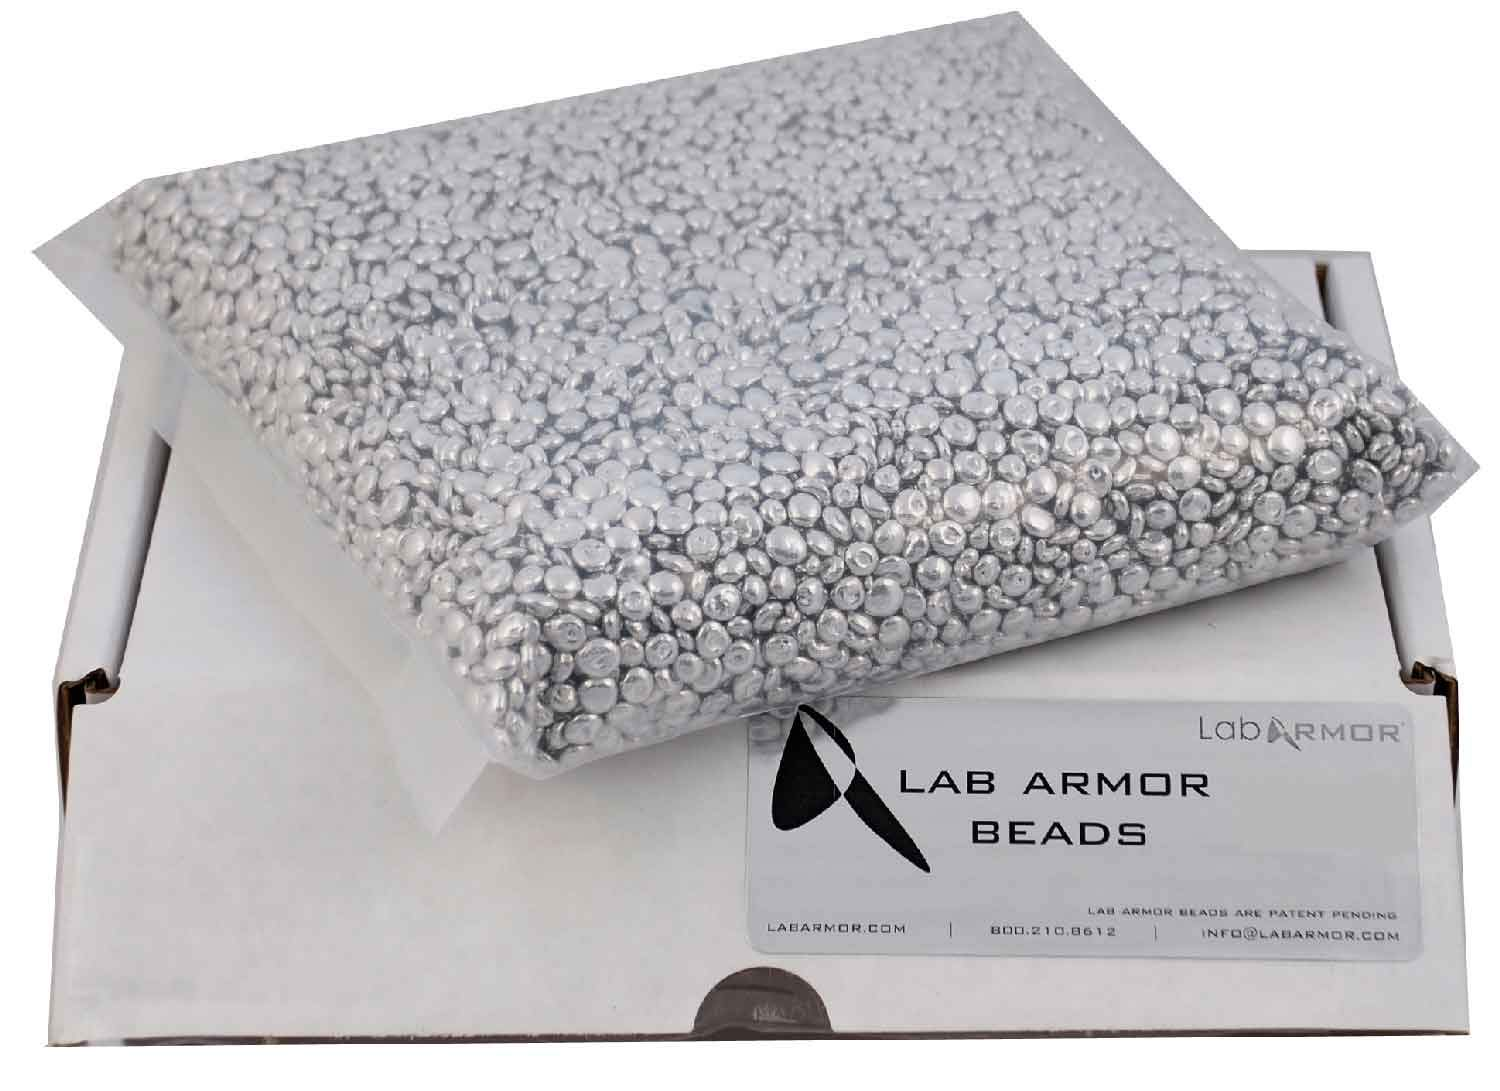 Lab Armor Beads, 0.75 Liters, Eco-Friendly for Lab Heat Blocks and Water Baths